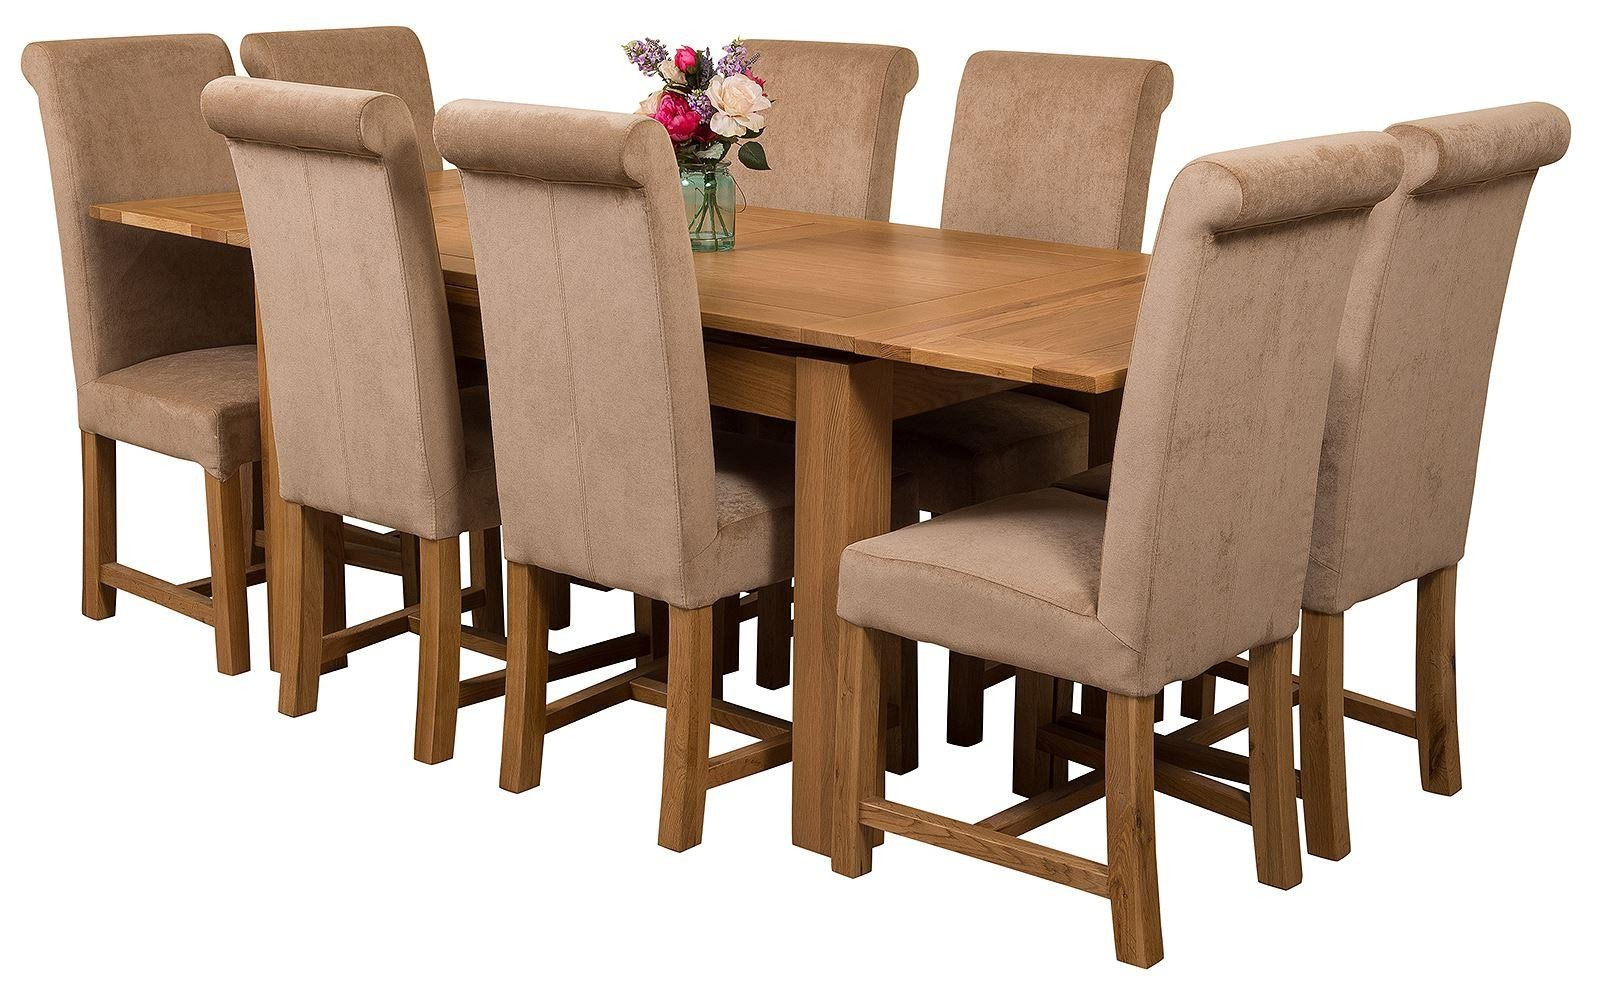 Richmond Solid Oak 140cm-220cm Extending Dining Table with 8 Washington Dining Chairs [Beige Fabric]